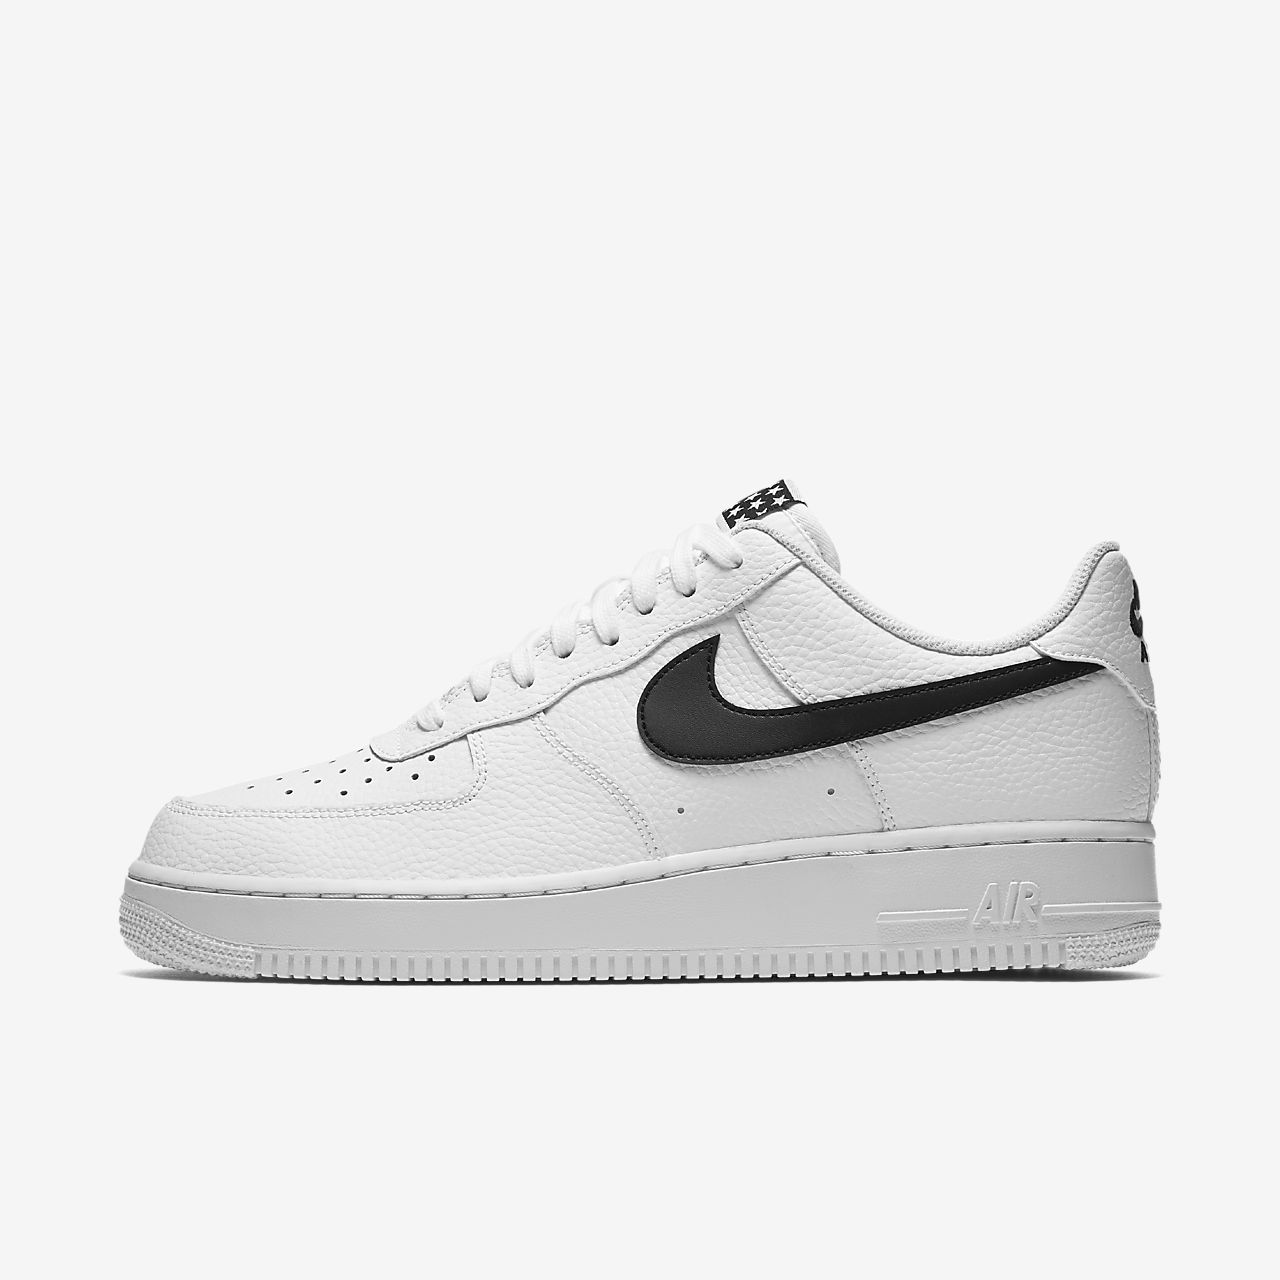 Nike Air Force 1 One White/Black AA4083-103 Original Shoes Men